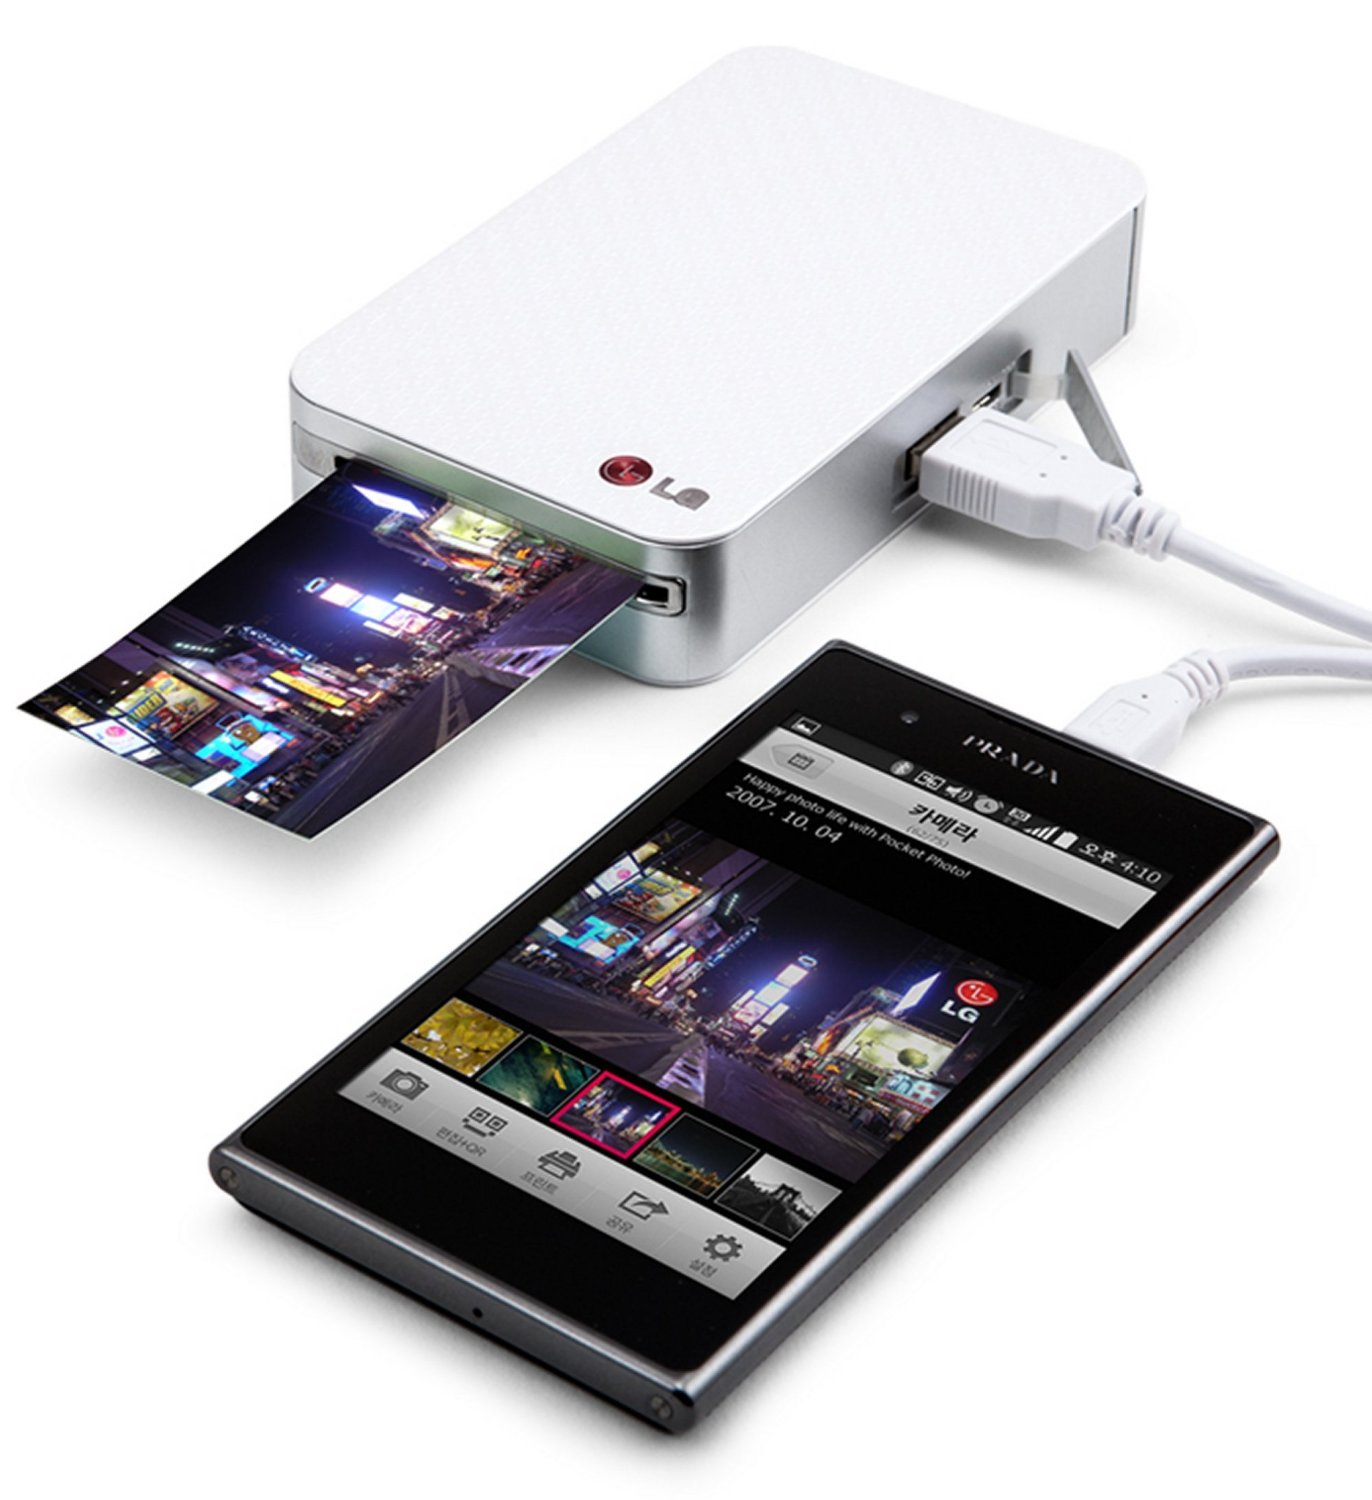 Camera Printing From Android Phone mini mobile printer for android smartphone smartphone